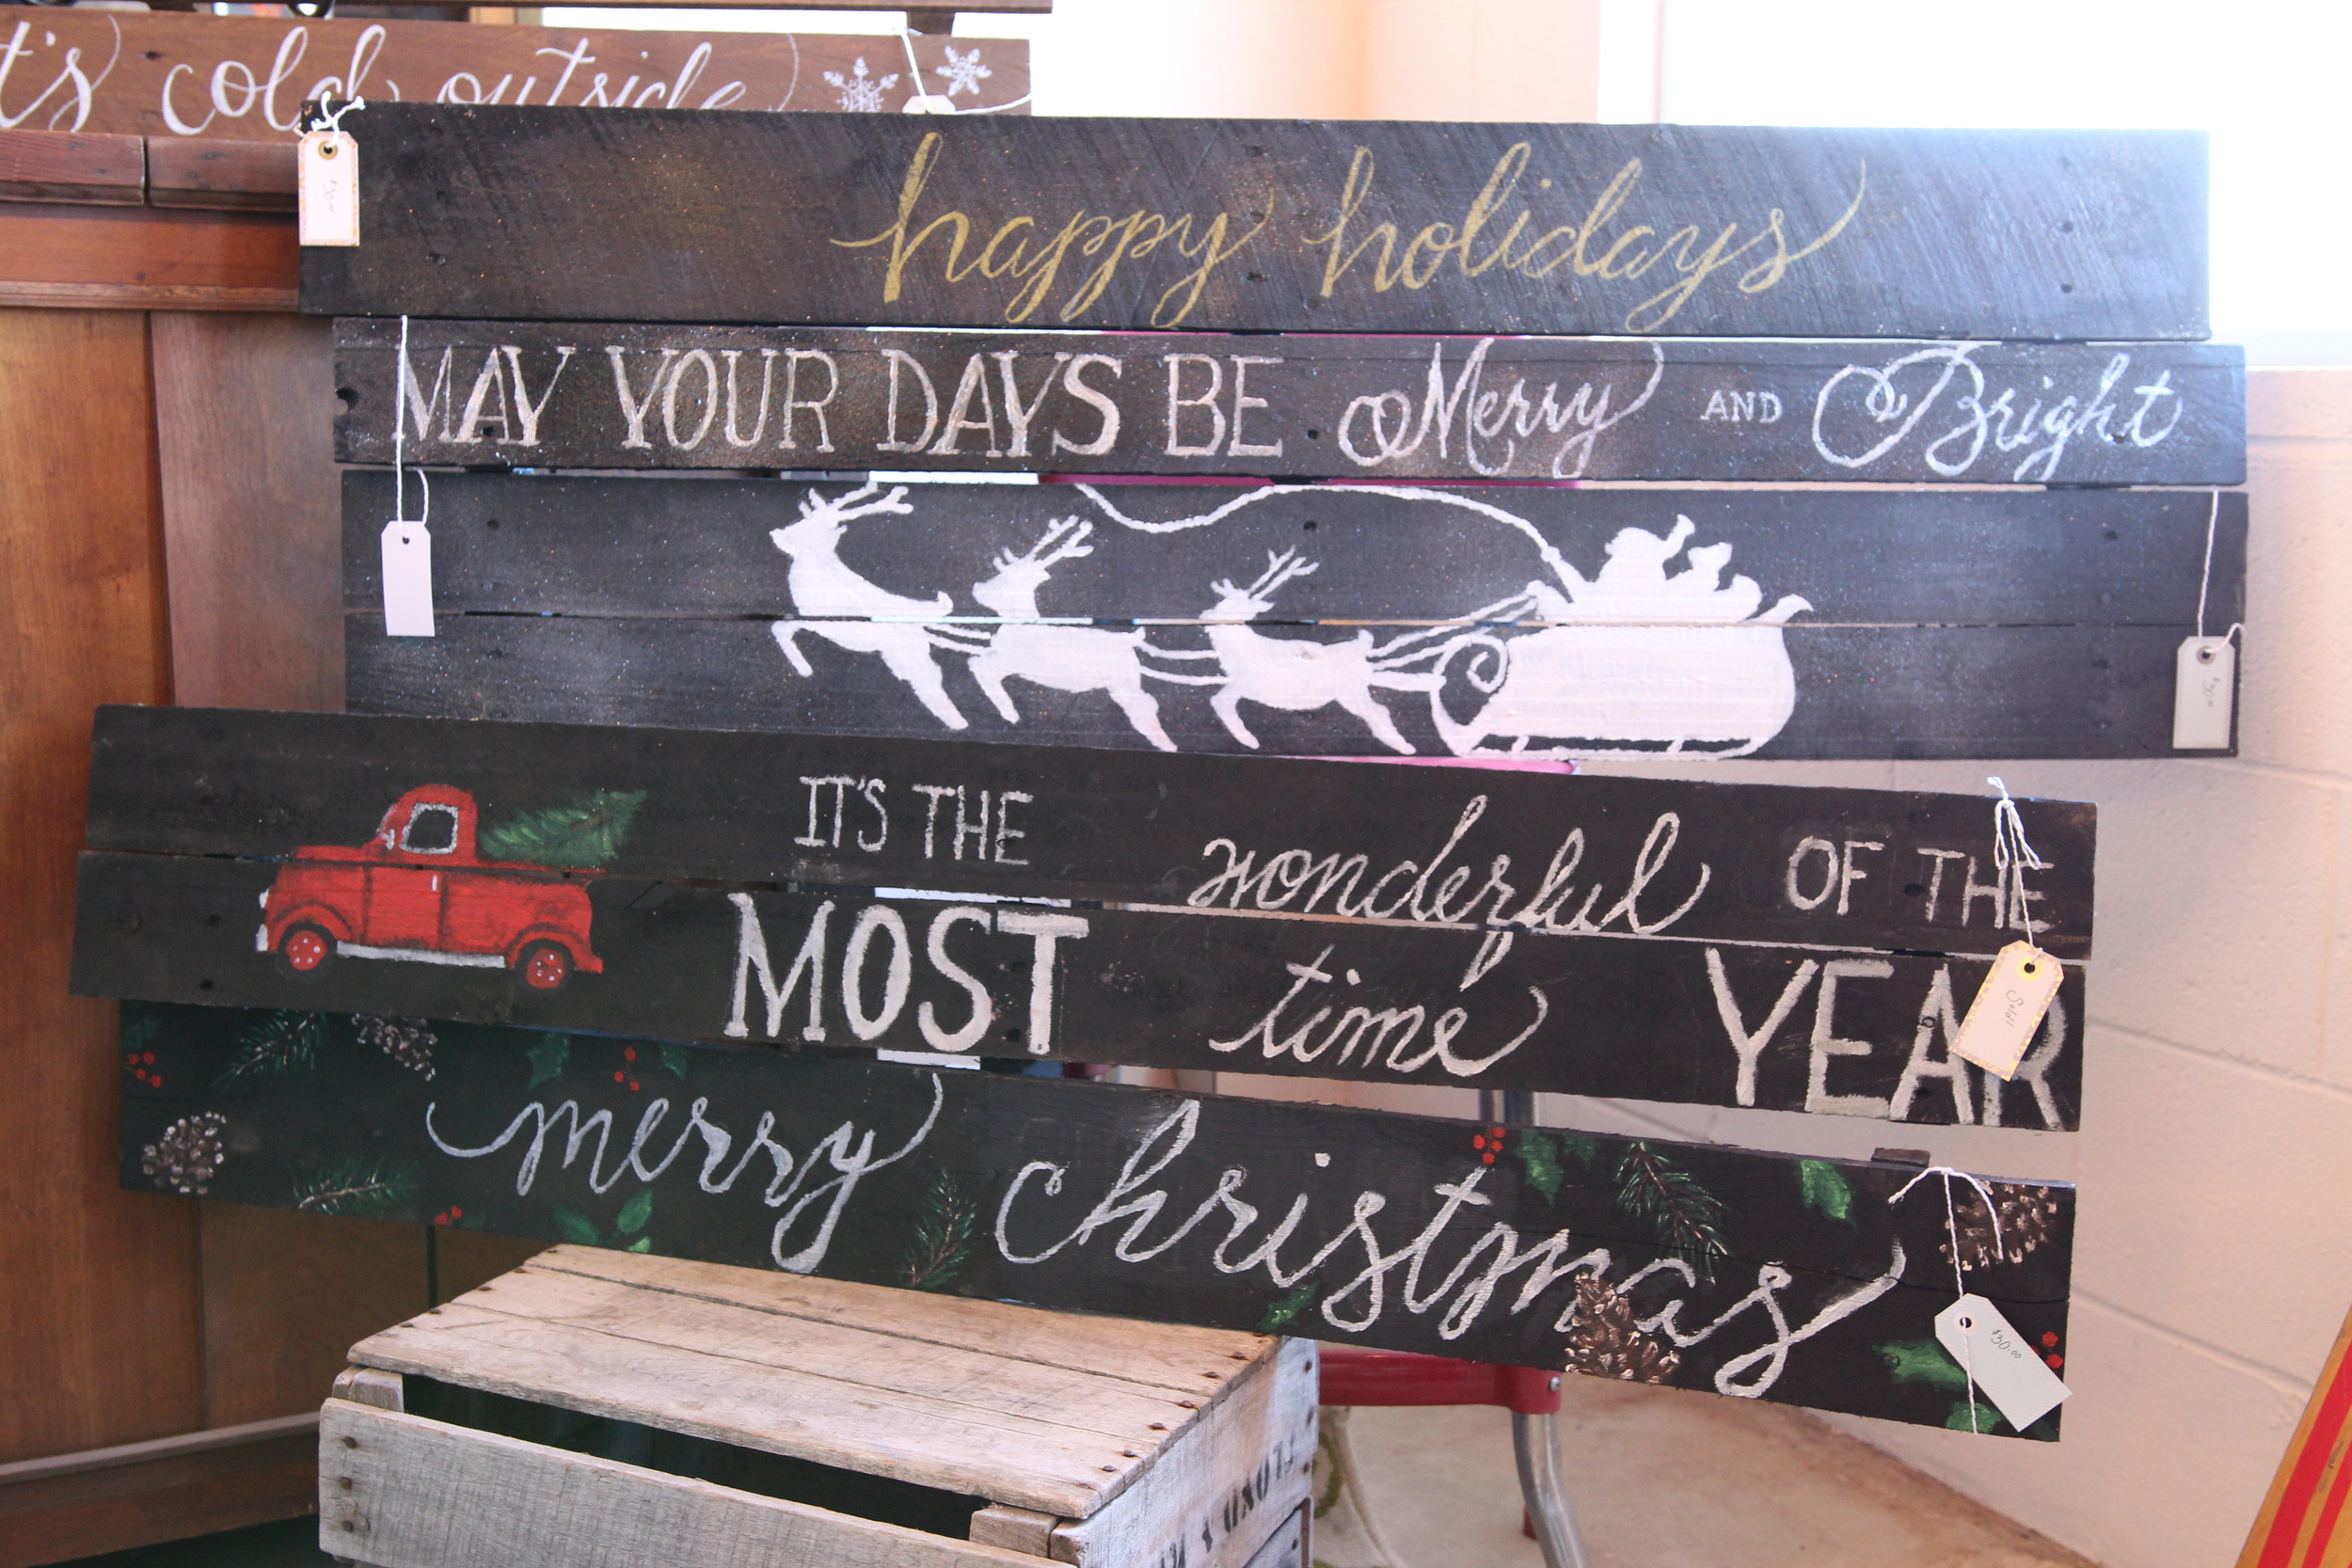 Our own in-house artist, Cristina, came up with some original wooden signs for your holiday mantle display.